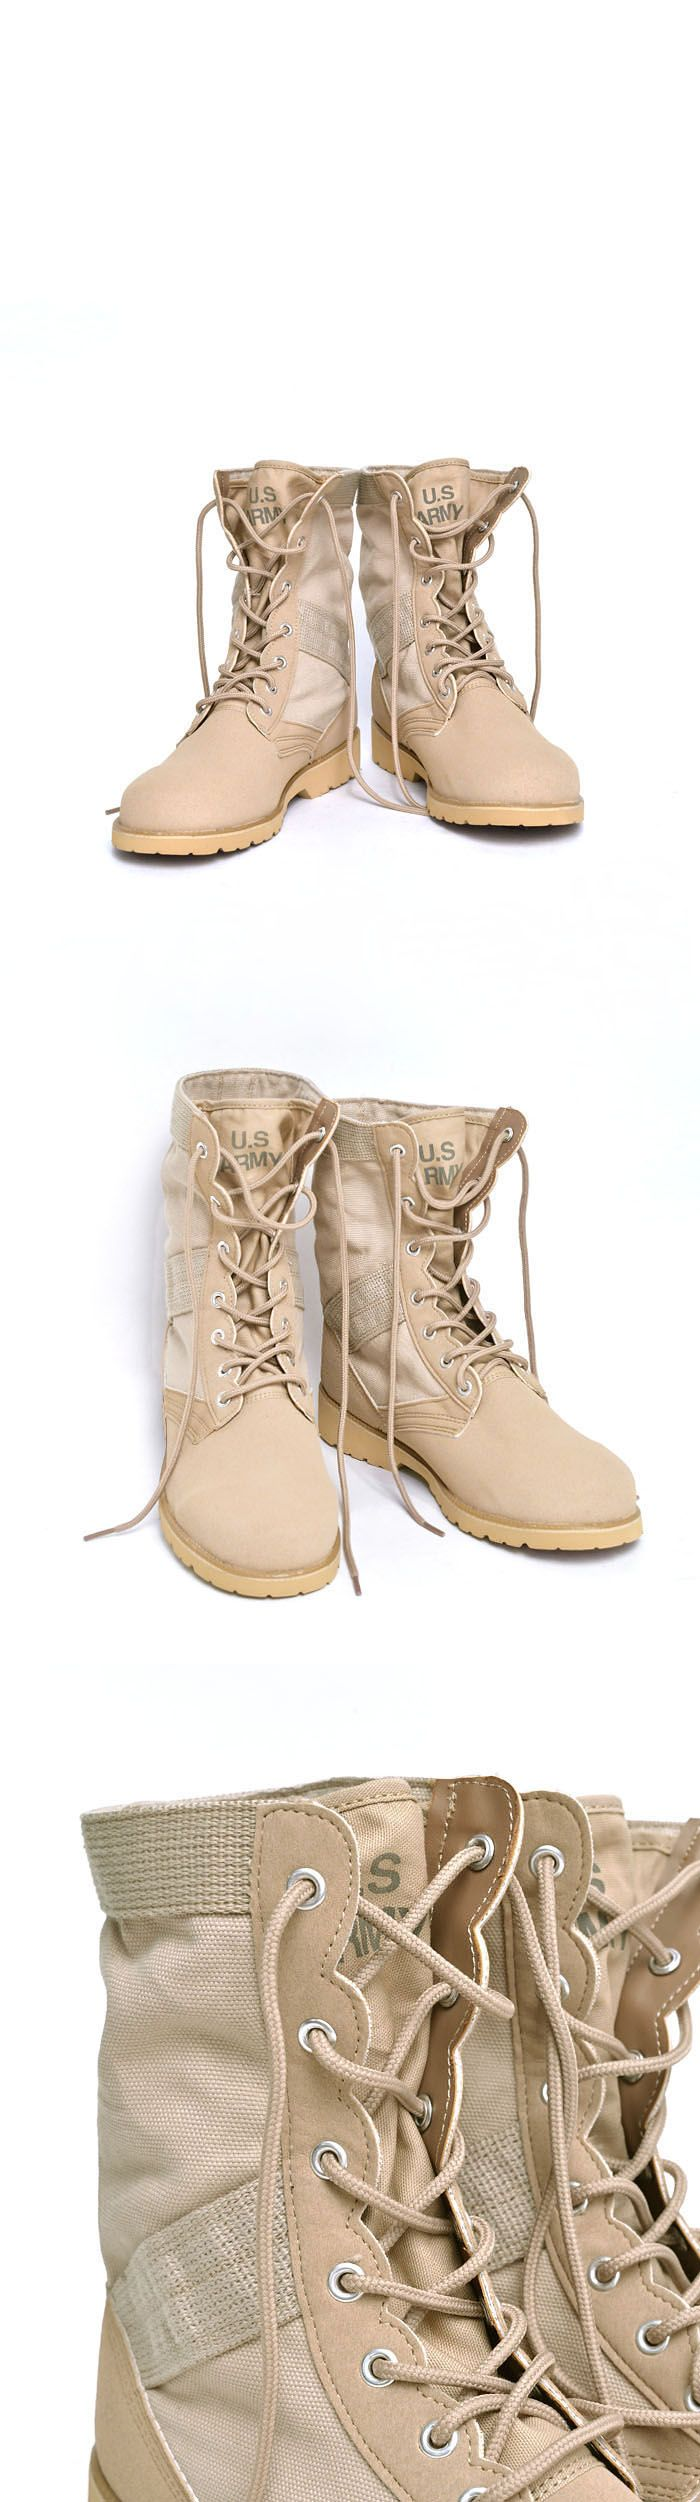 Shoes :: US Army Print Desert Boots-Shoes 484 - GUYLOOK Men's Trendy Fashion Clothing Online